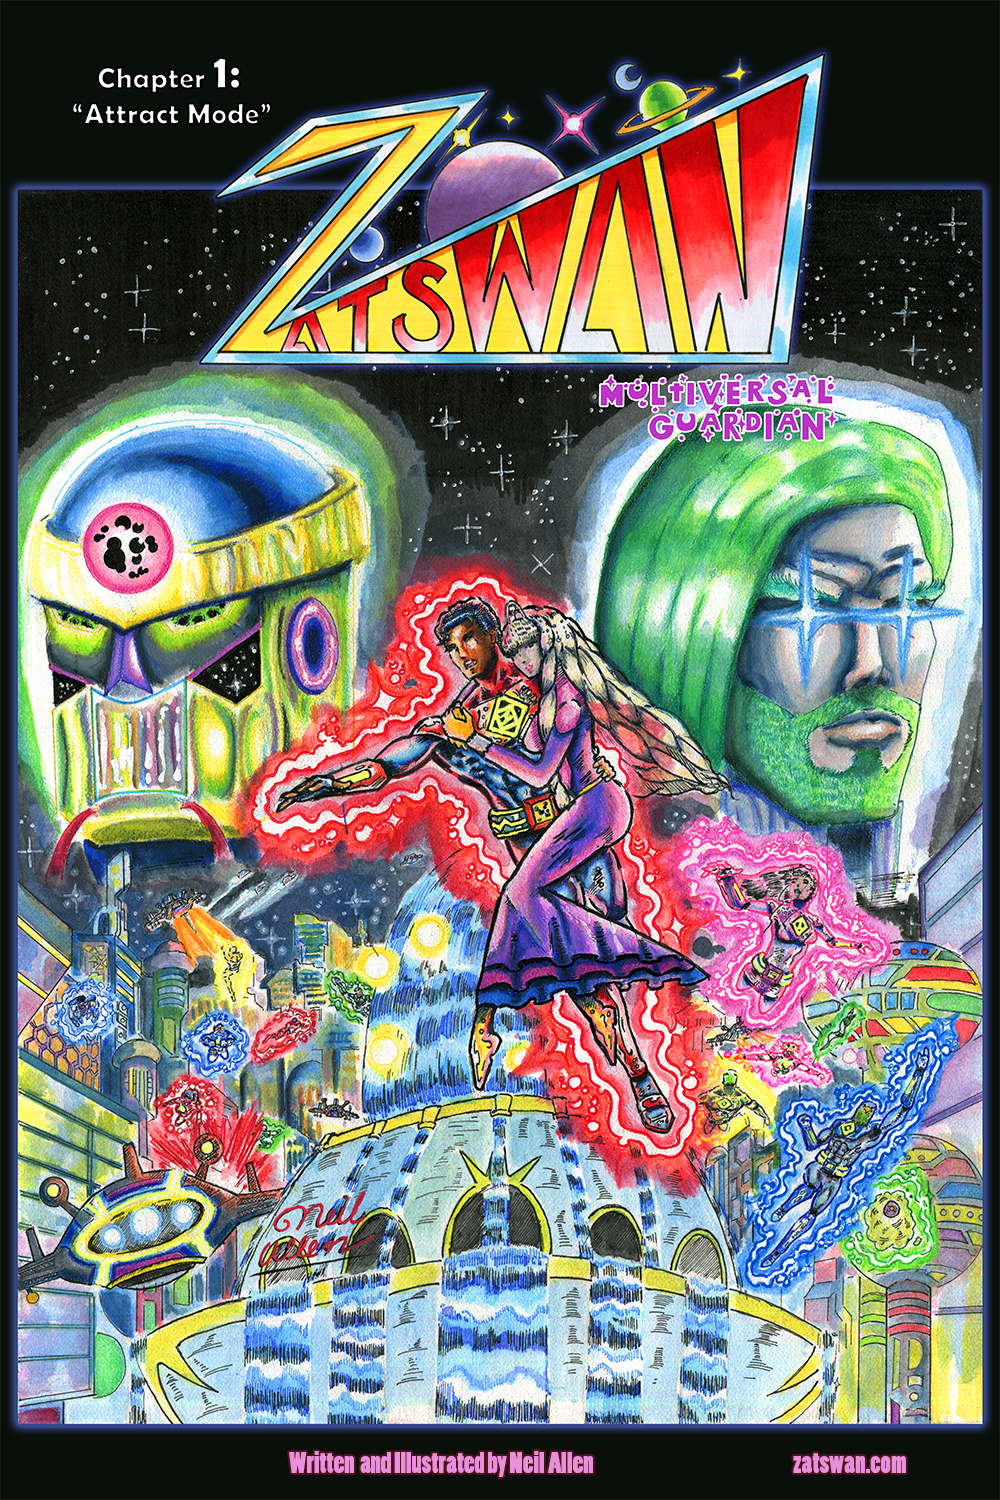 Zatswan: Multiversal Guardian Chapter 1 Cover